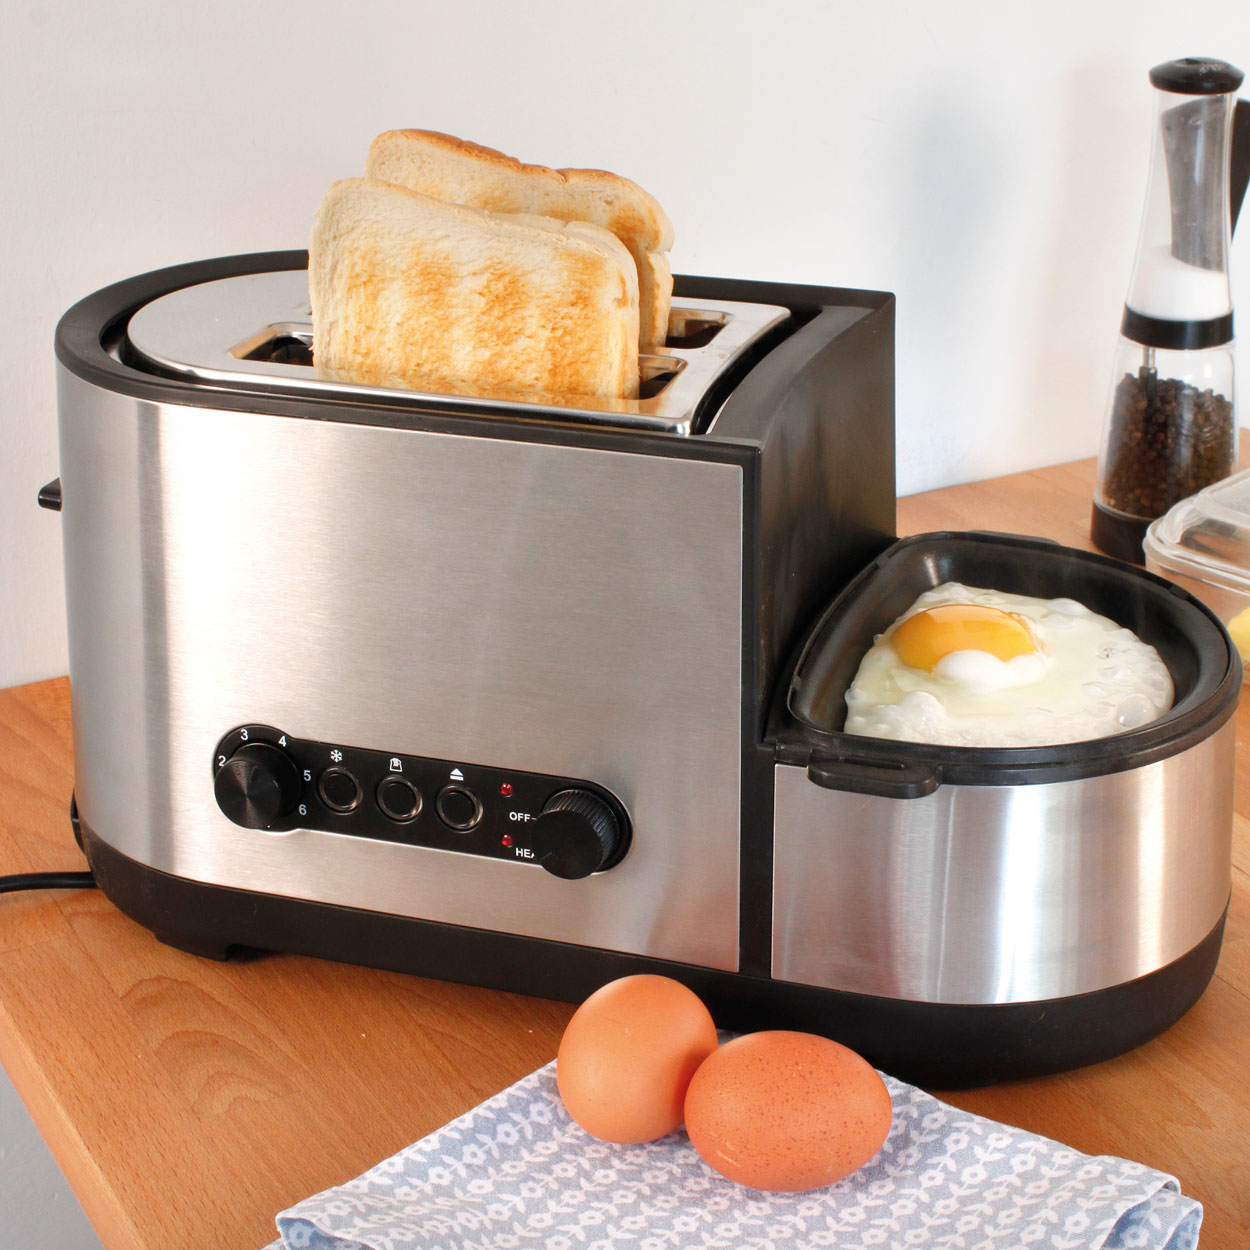 Image of Toaster & Egg Cooker